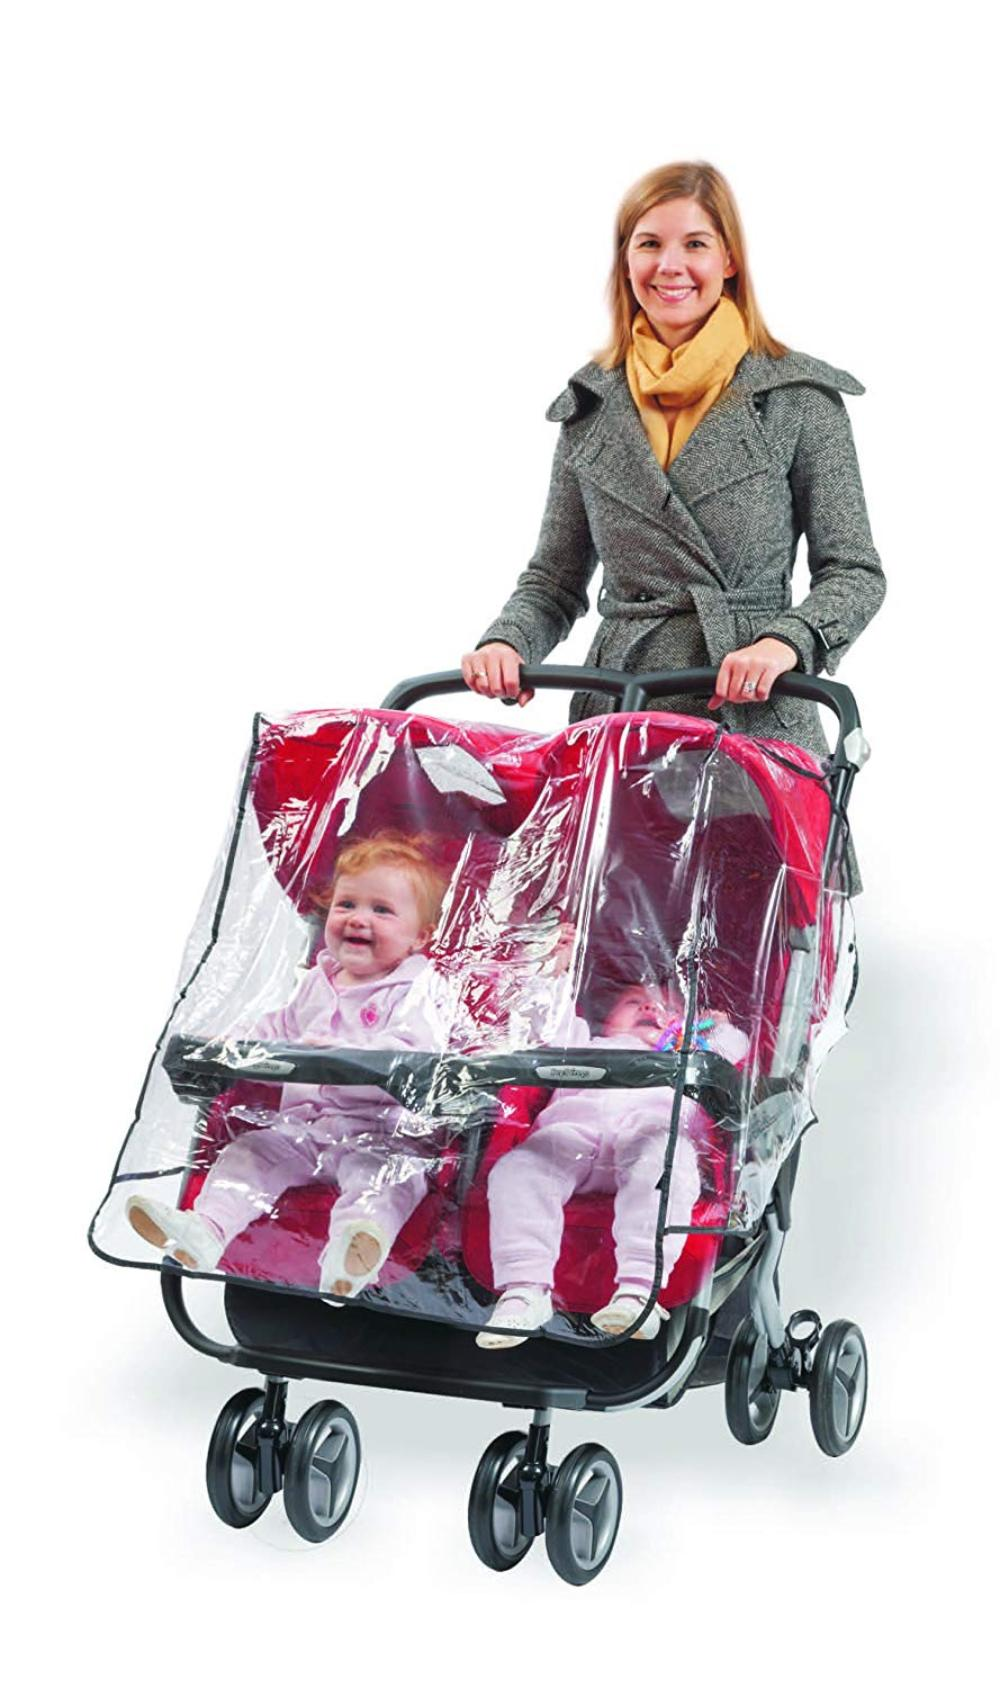 Double Stroller Rain Cover Babyroues Twin Stroller Weathershield Raincover Protects Your Baby From Rain Cold And Wind By Baby Rous